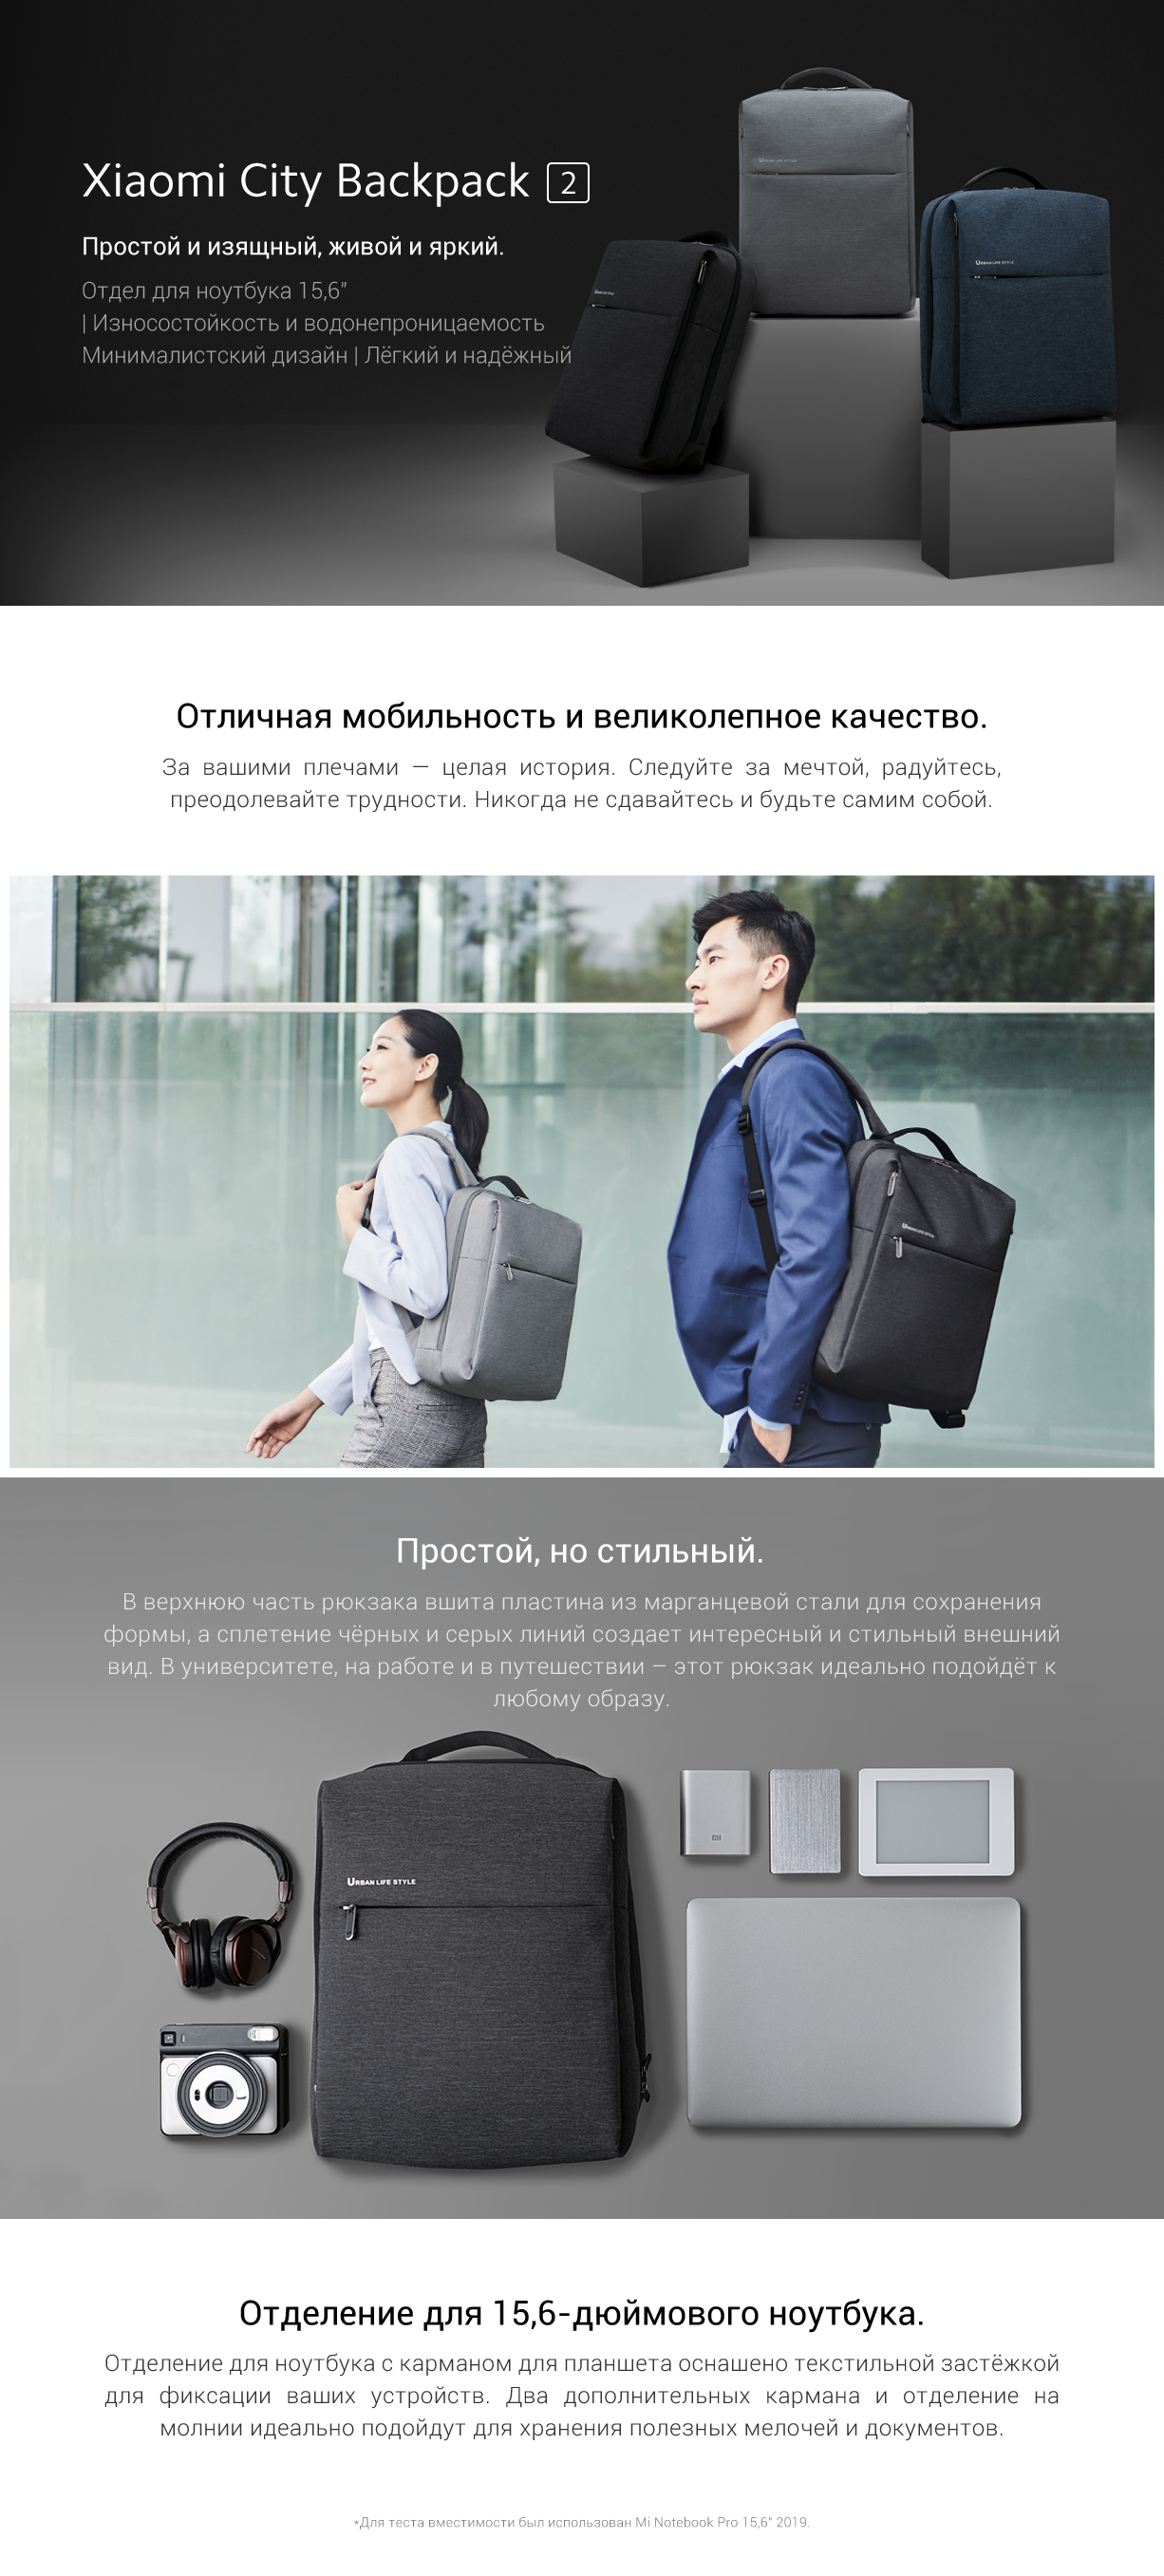 Рюкзак Xiaomi City Backpack 2